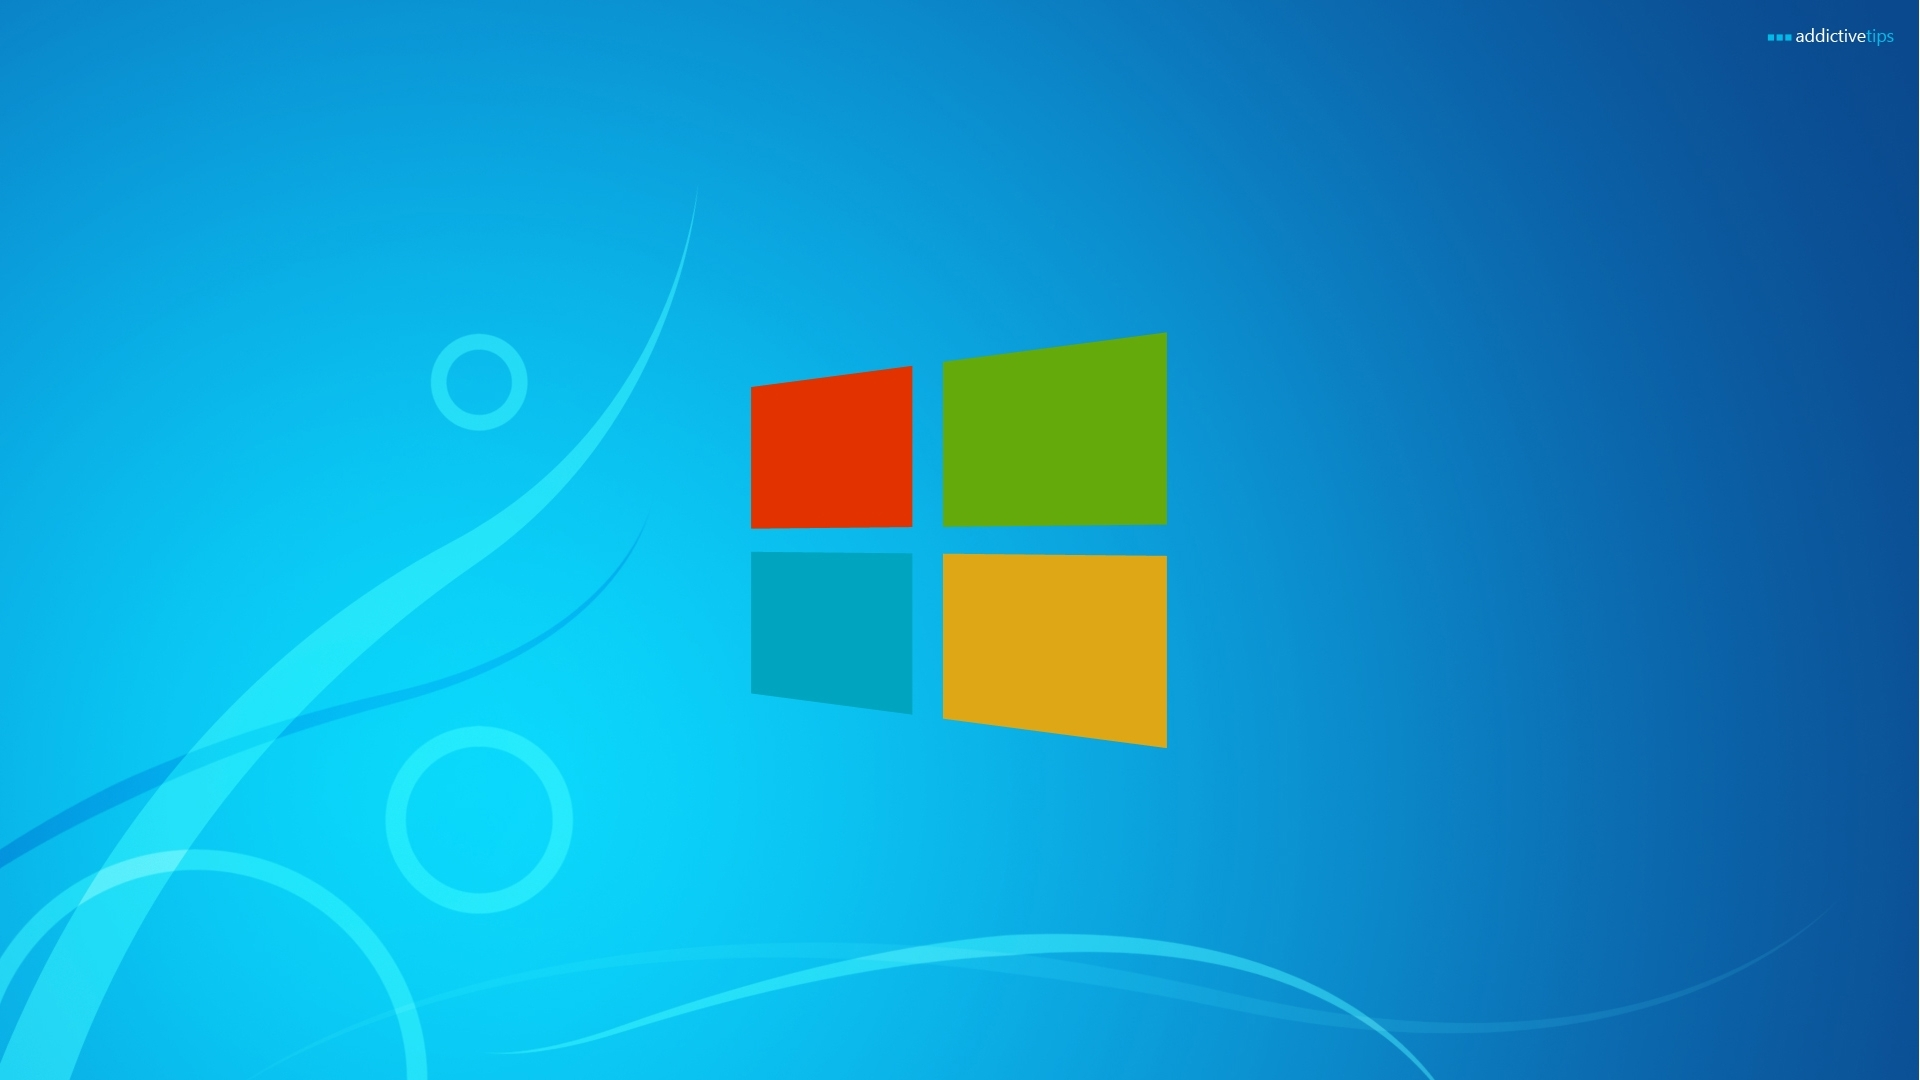 Title Windows Wallpapers Awesome 31